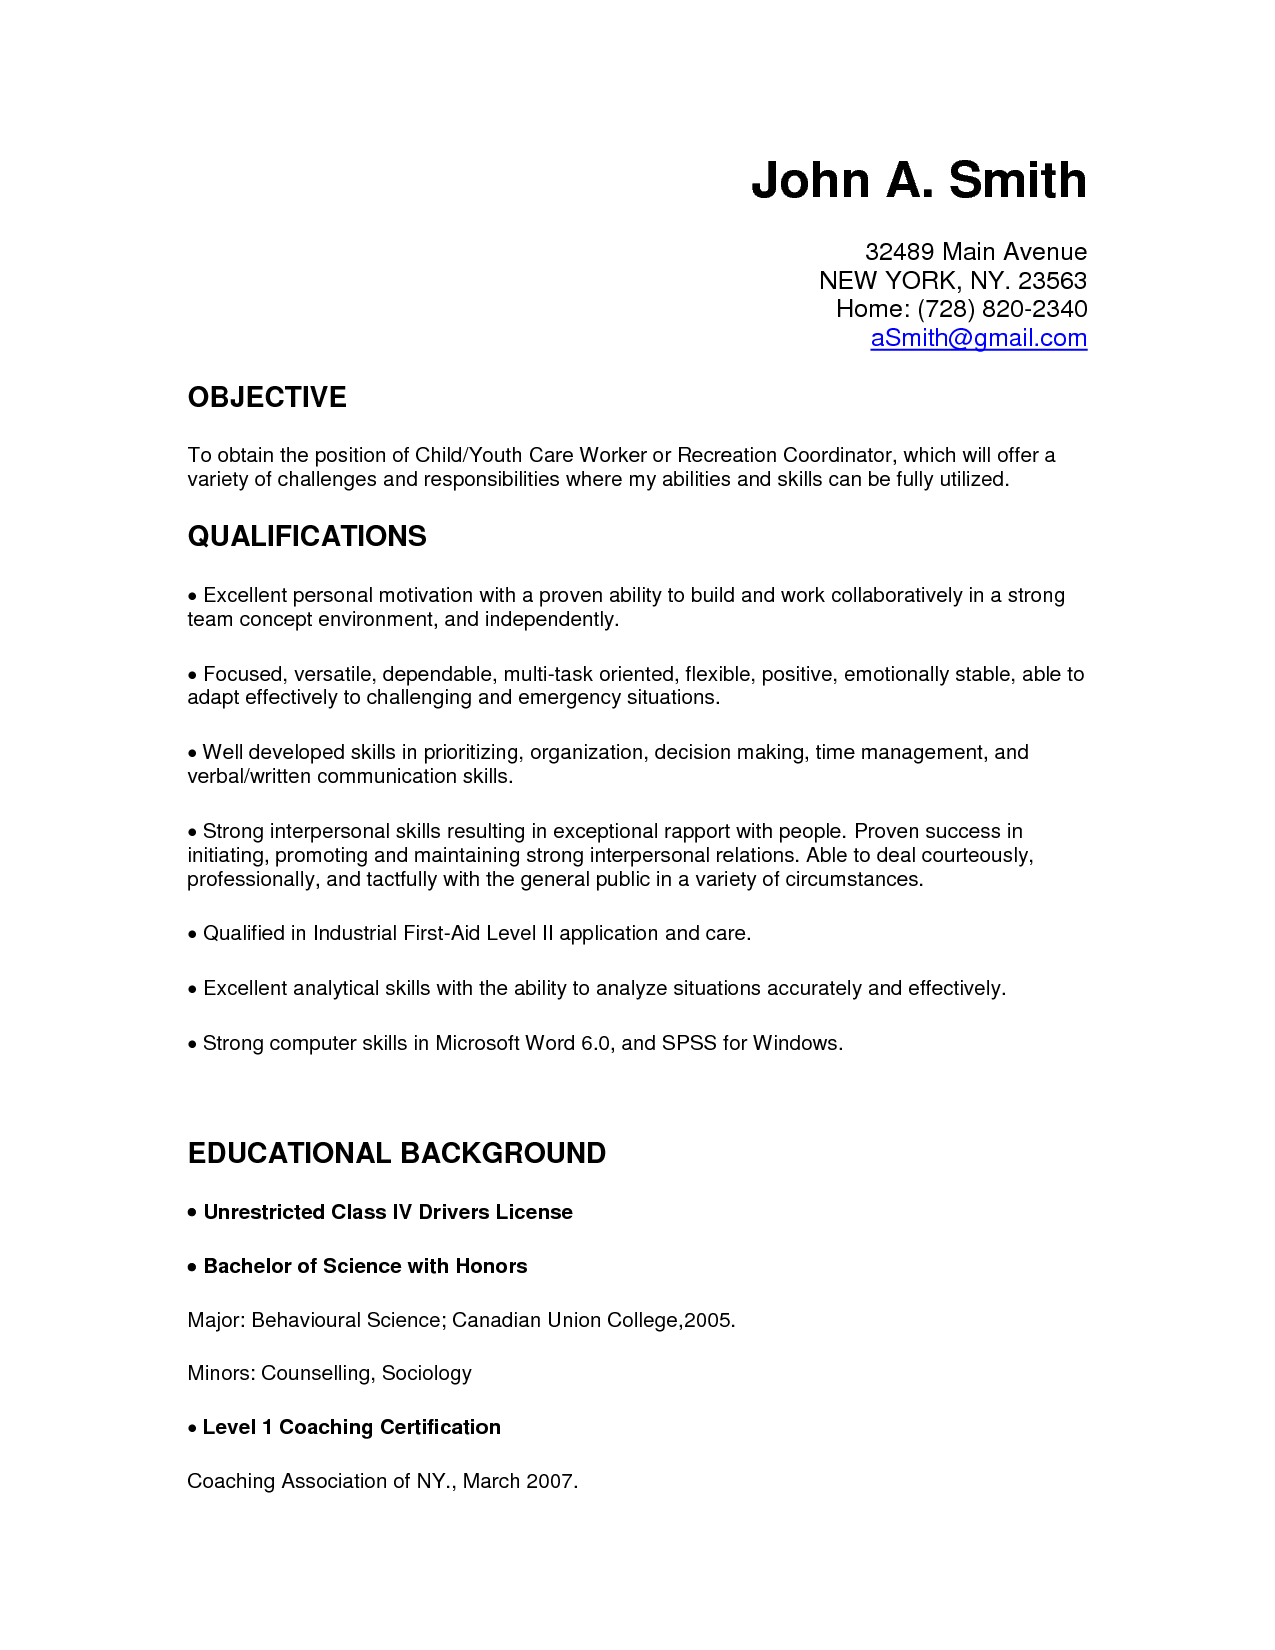 youth work cover letter examples sample uva career bakery position church worker best free home design idea inspiration - Sample Child Care Worker Cover Letter